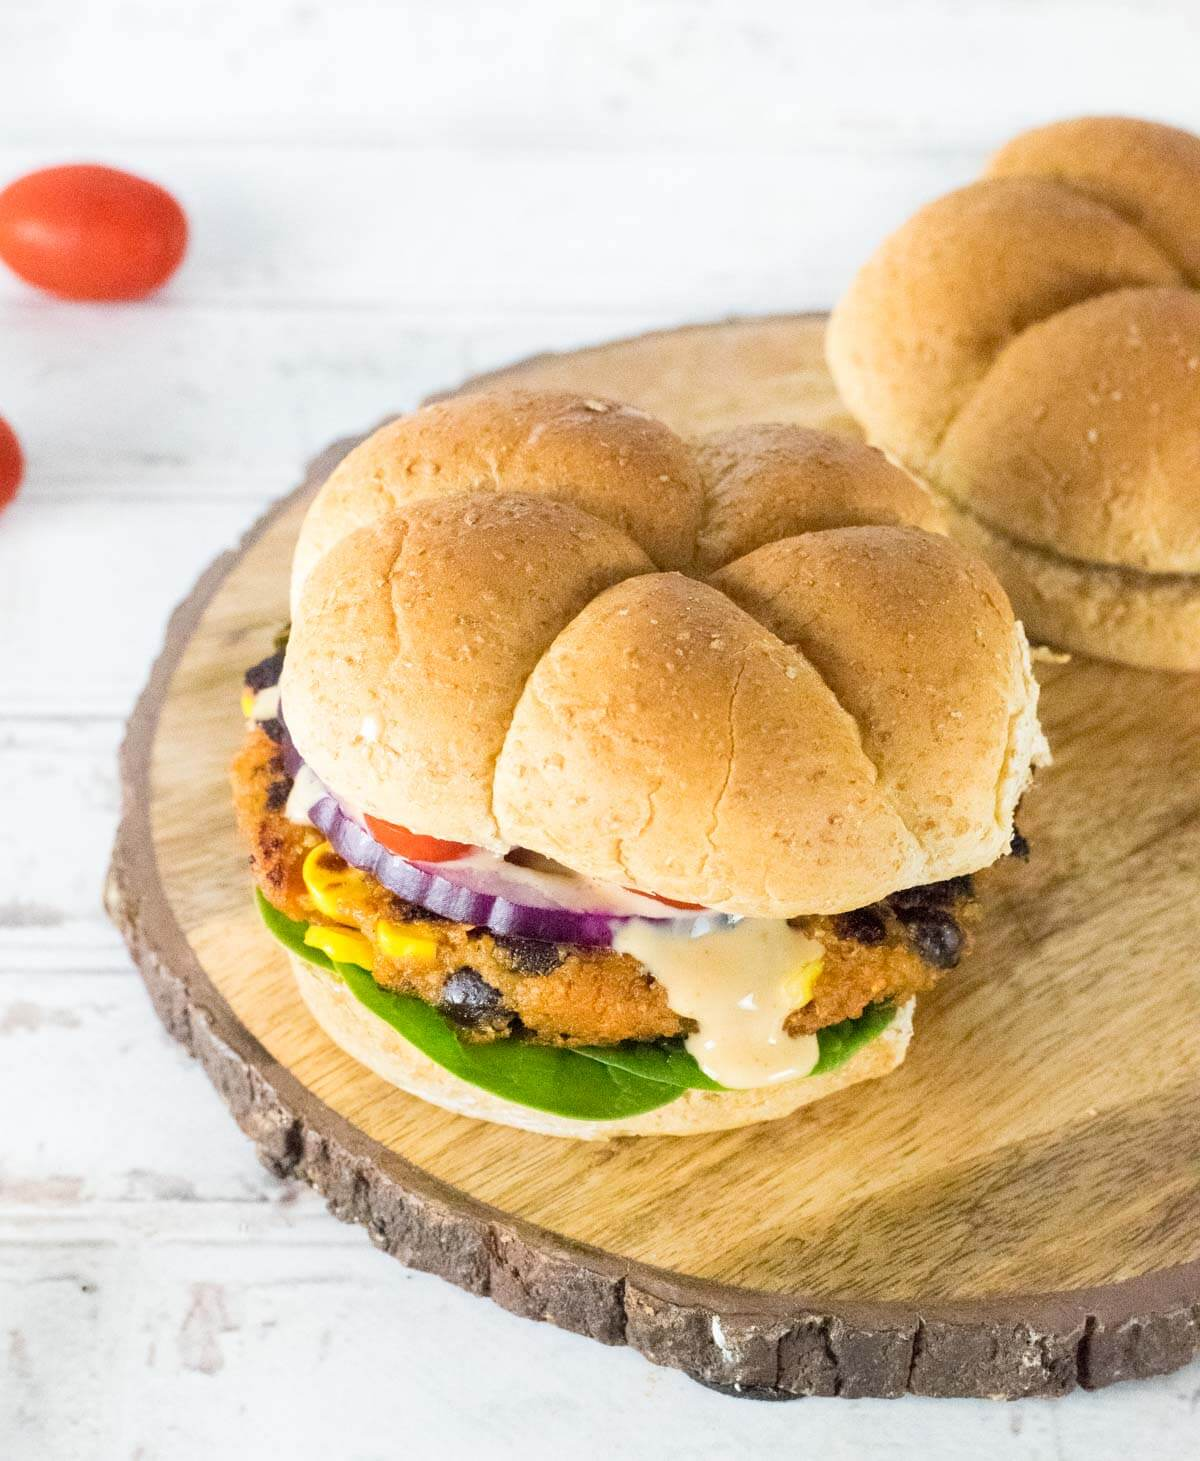 Sweet potato black bean burger toppings and bun with sauce dripping down.